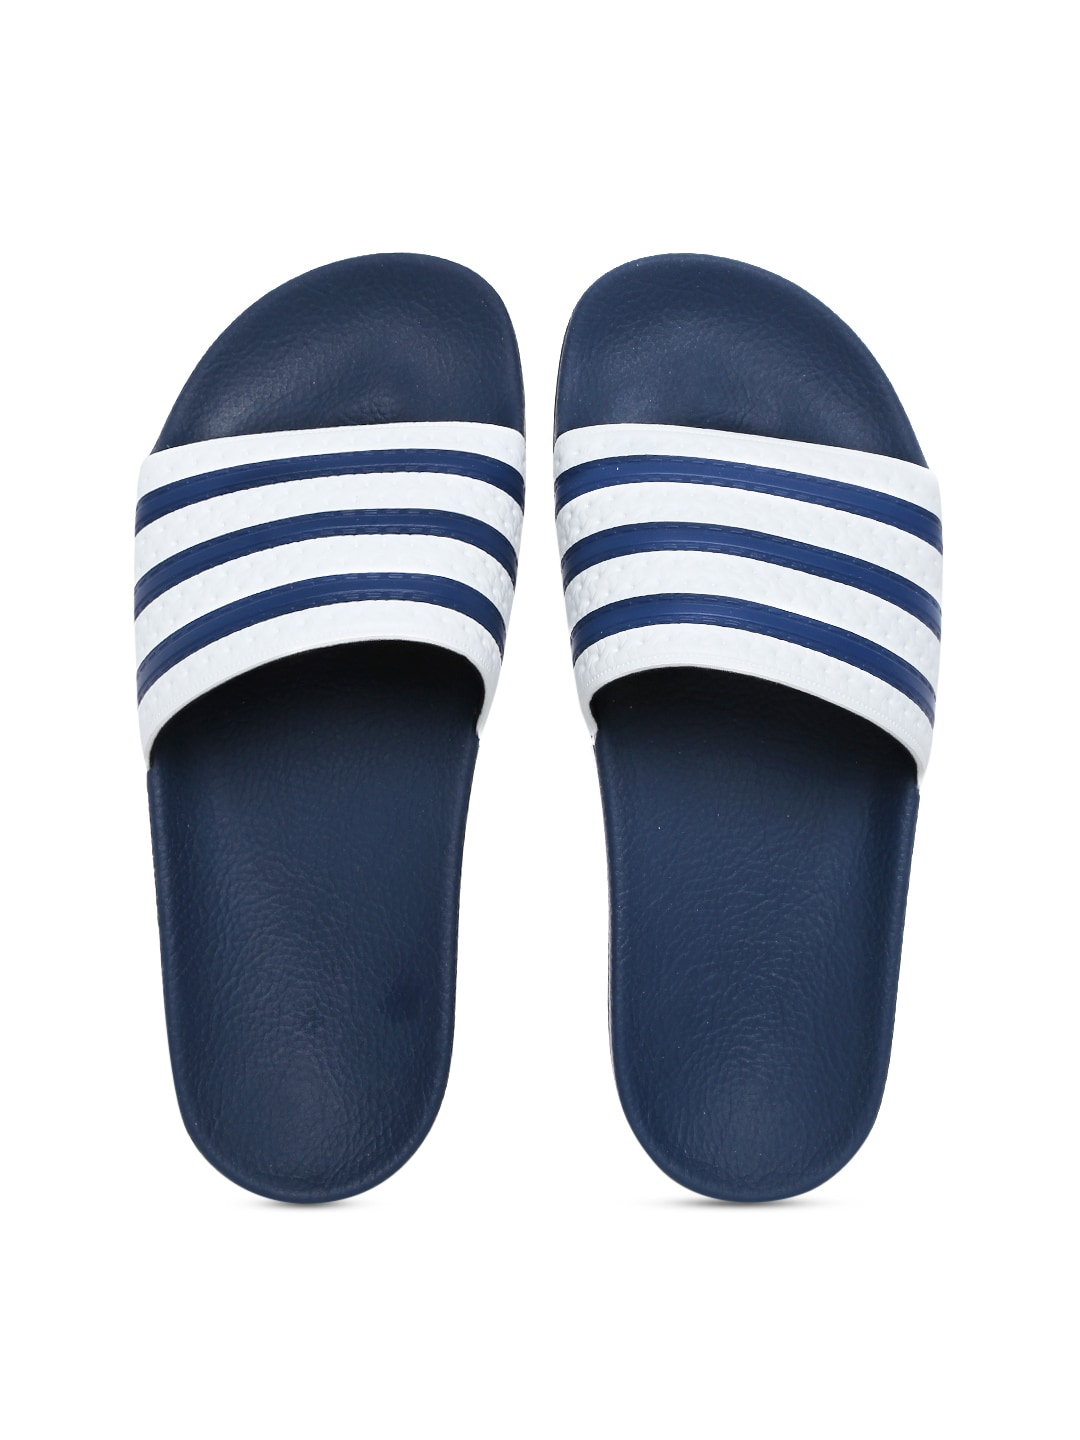 8874f24a8506 Adidas Slippers - Buy Adidas Slipper   Flip Flops Online India